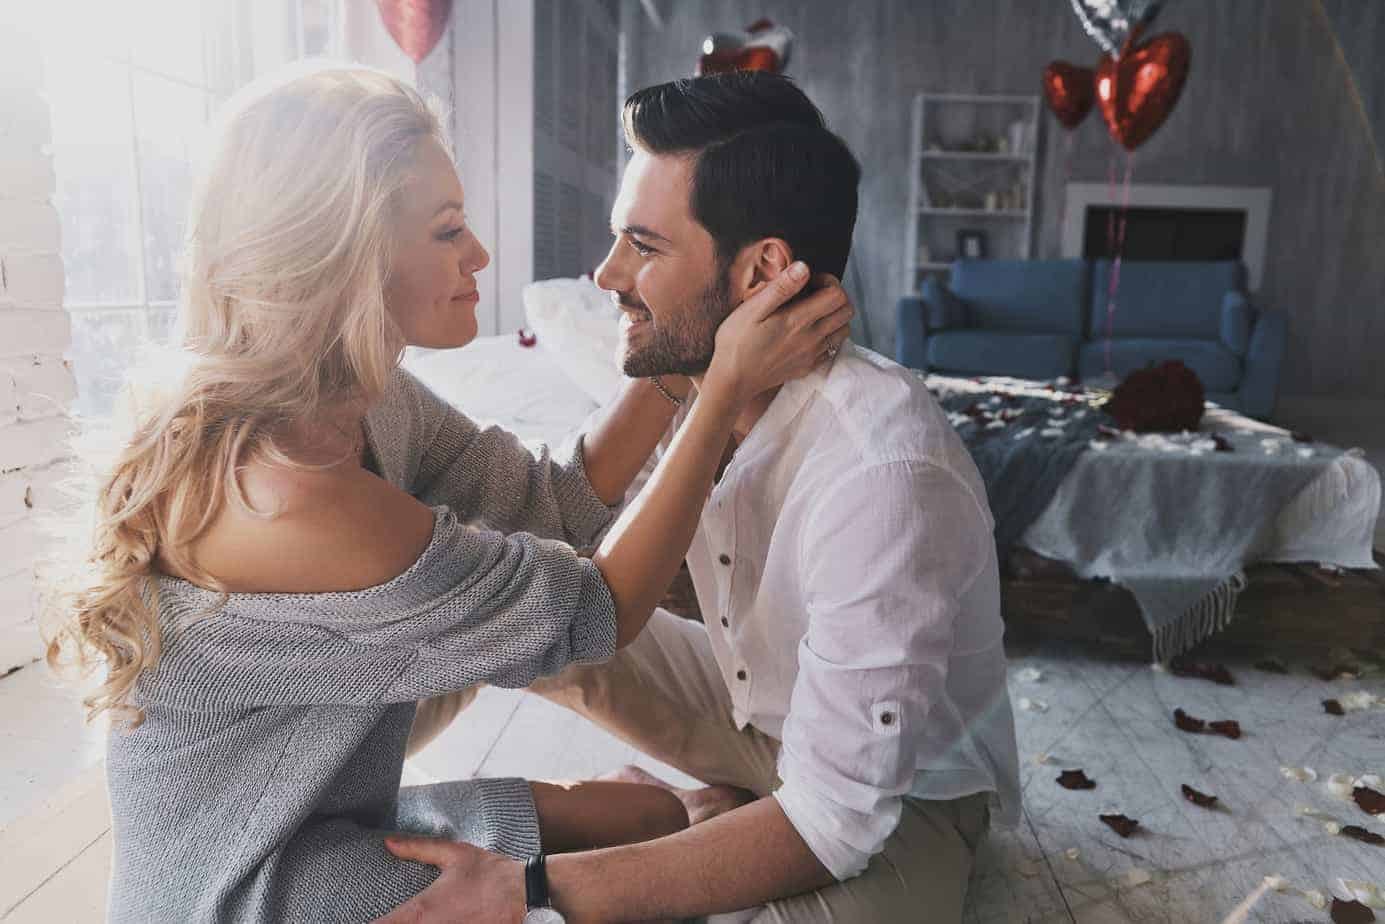 Cool Ways To Seduce A Gemini Woman In No Time - LoveDevani.com